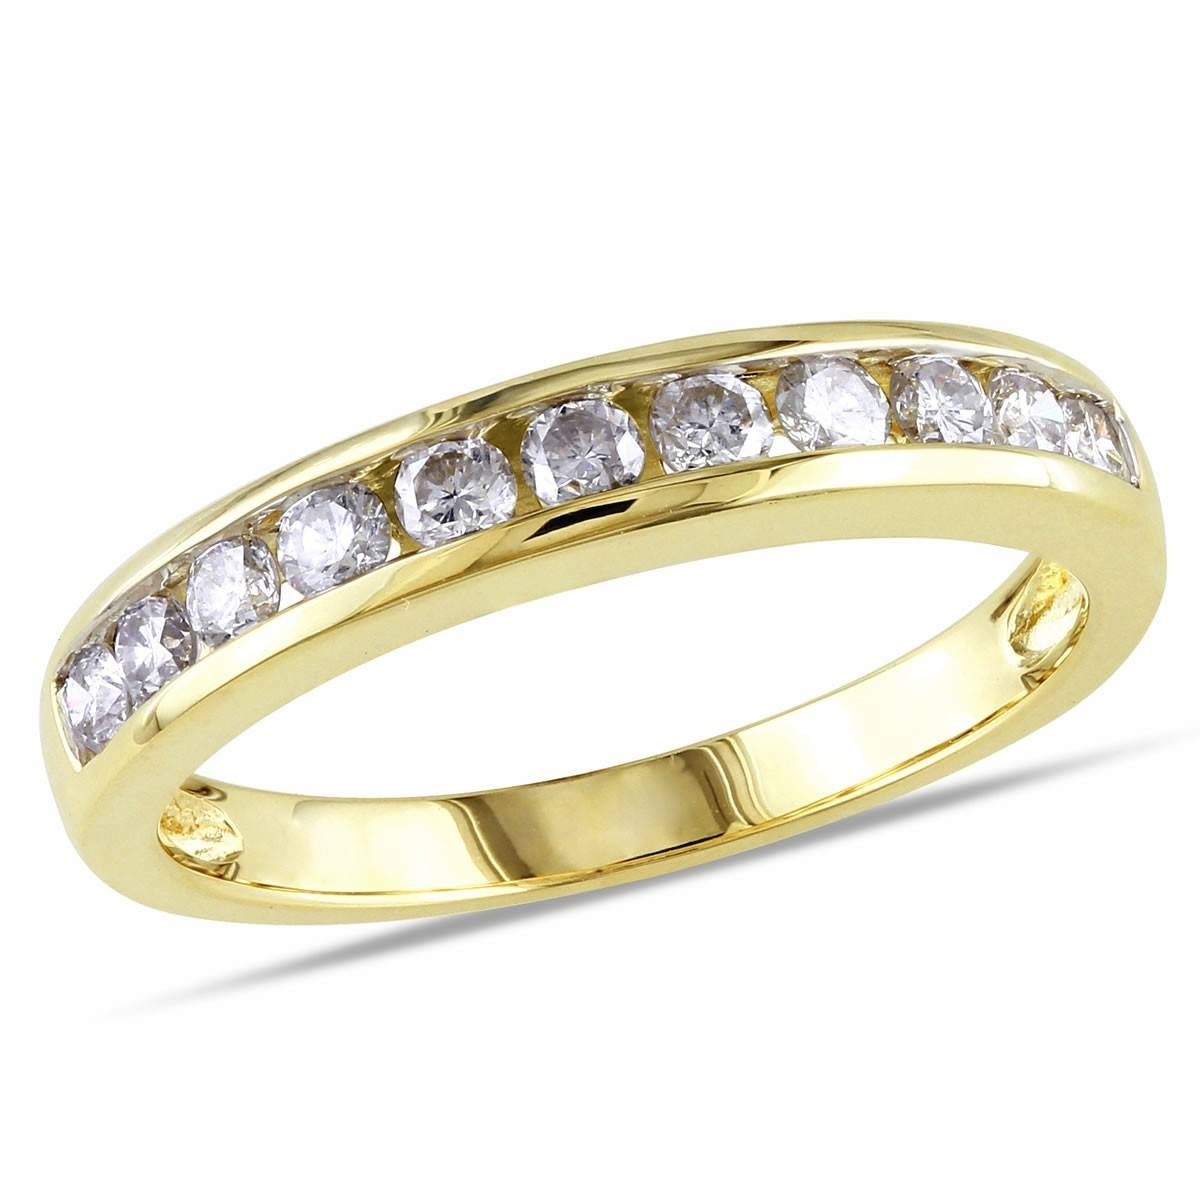 10K Yellow Gold 1/2 Ct Diamond Tw Eternity Anniversary Ring, Gh I2 Regarding Current Diamond Anniversary Rings (View 2 of 25)